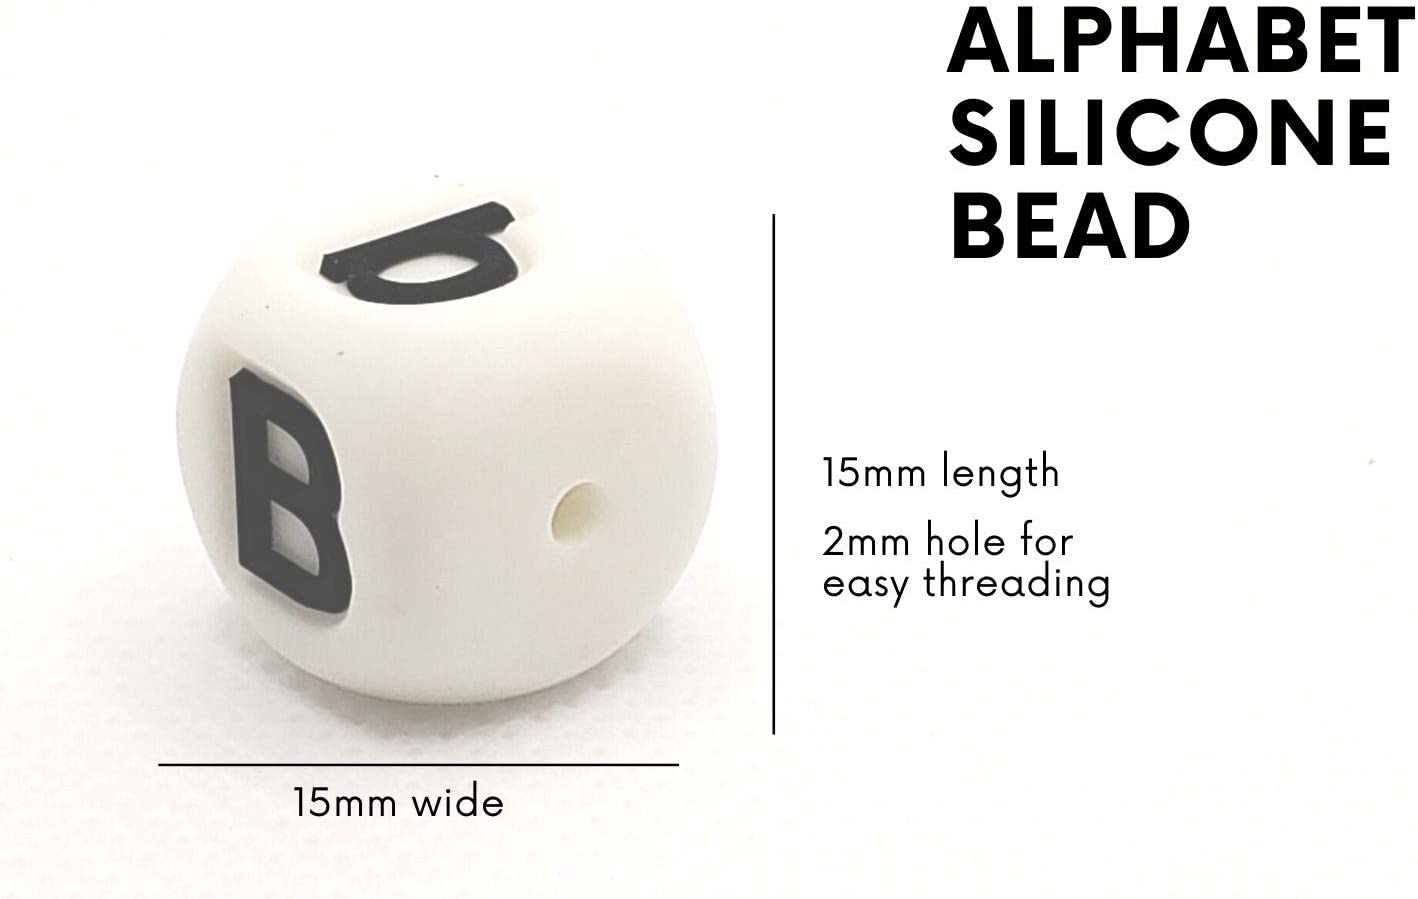 Silicone Alphabet Beads for Jewelry A-Z Silicone Letter Cubes 60 Pcs, 15mm Silicone Cube Bracelets /& Necklaces Letter Beads